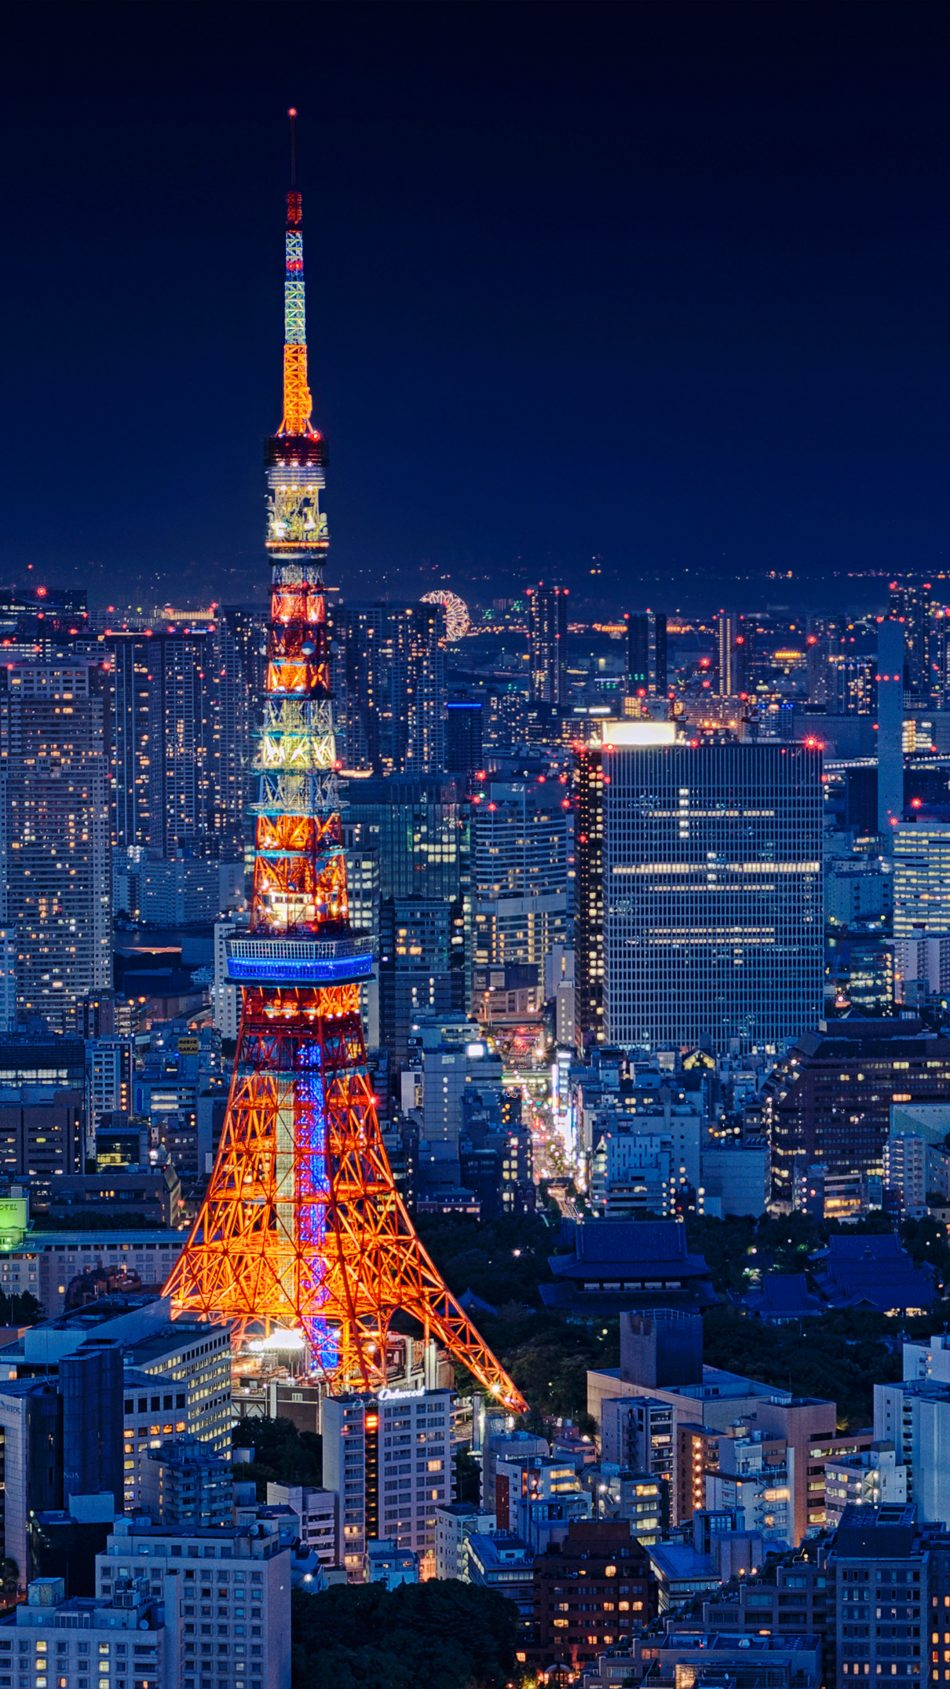 Tokyo Tower Japan Night Cityscape 4K Ultra HD Mobile Wallpaper